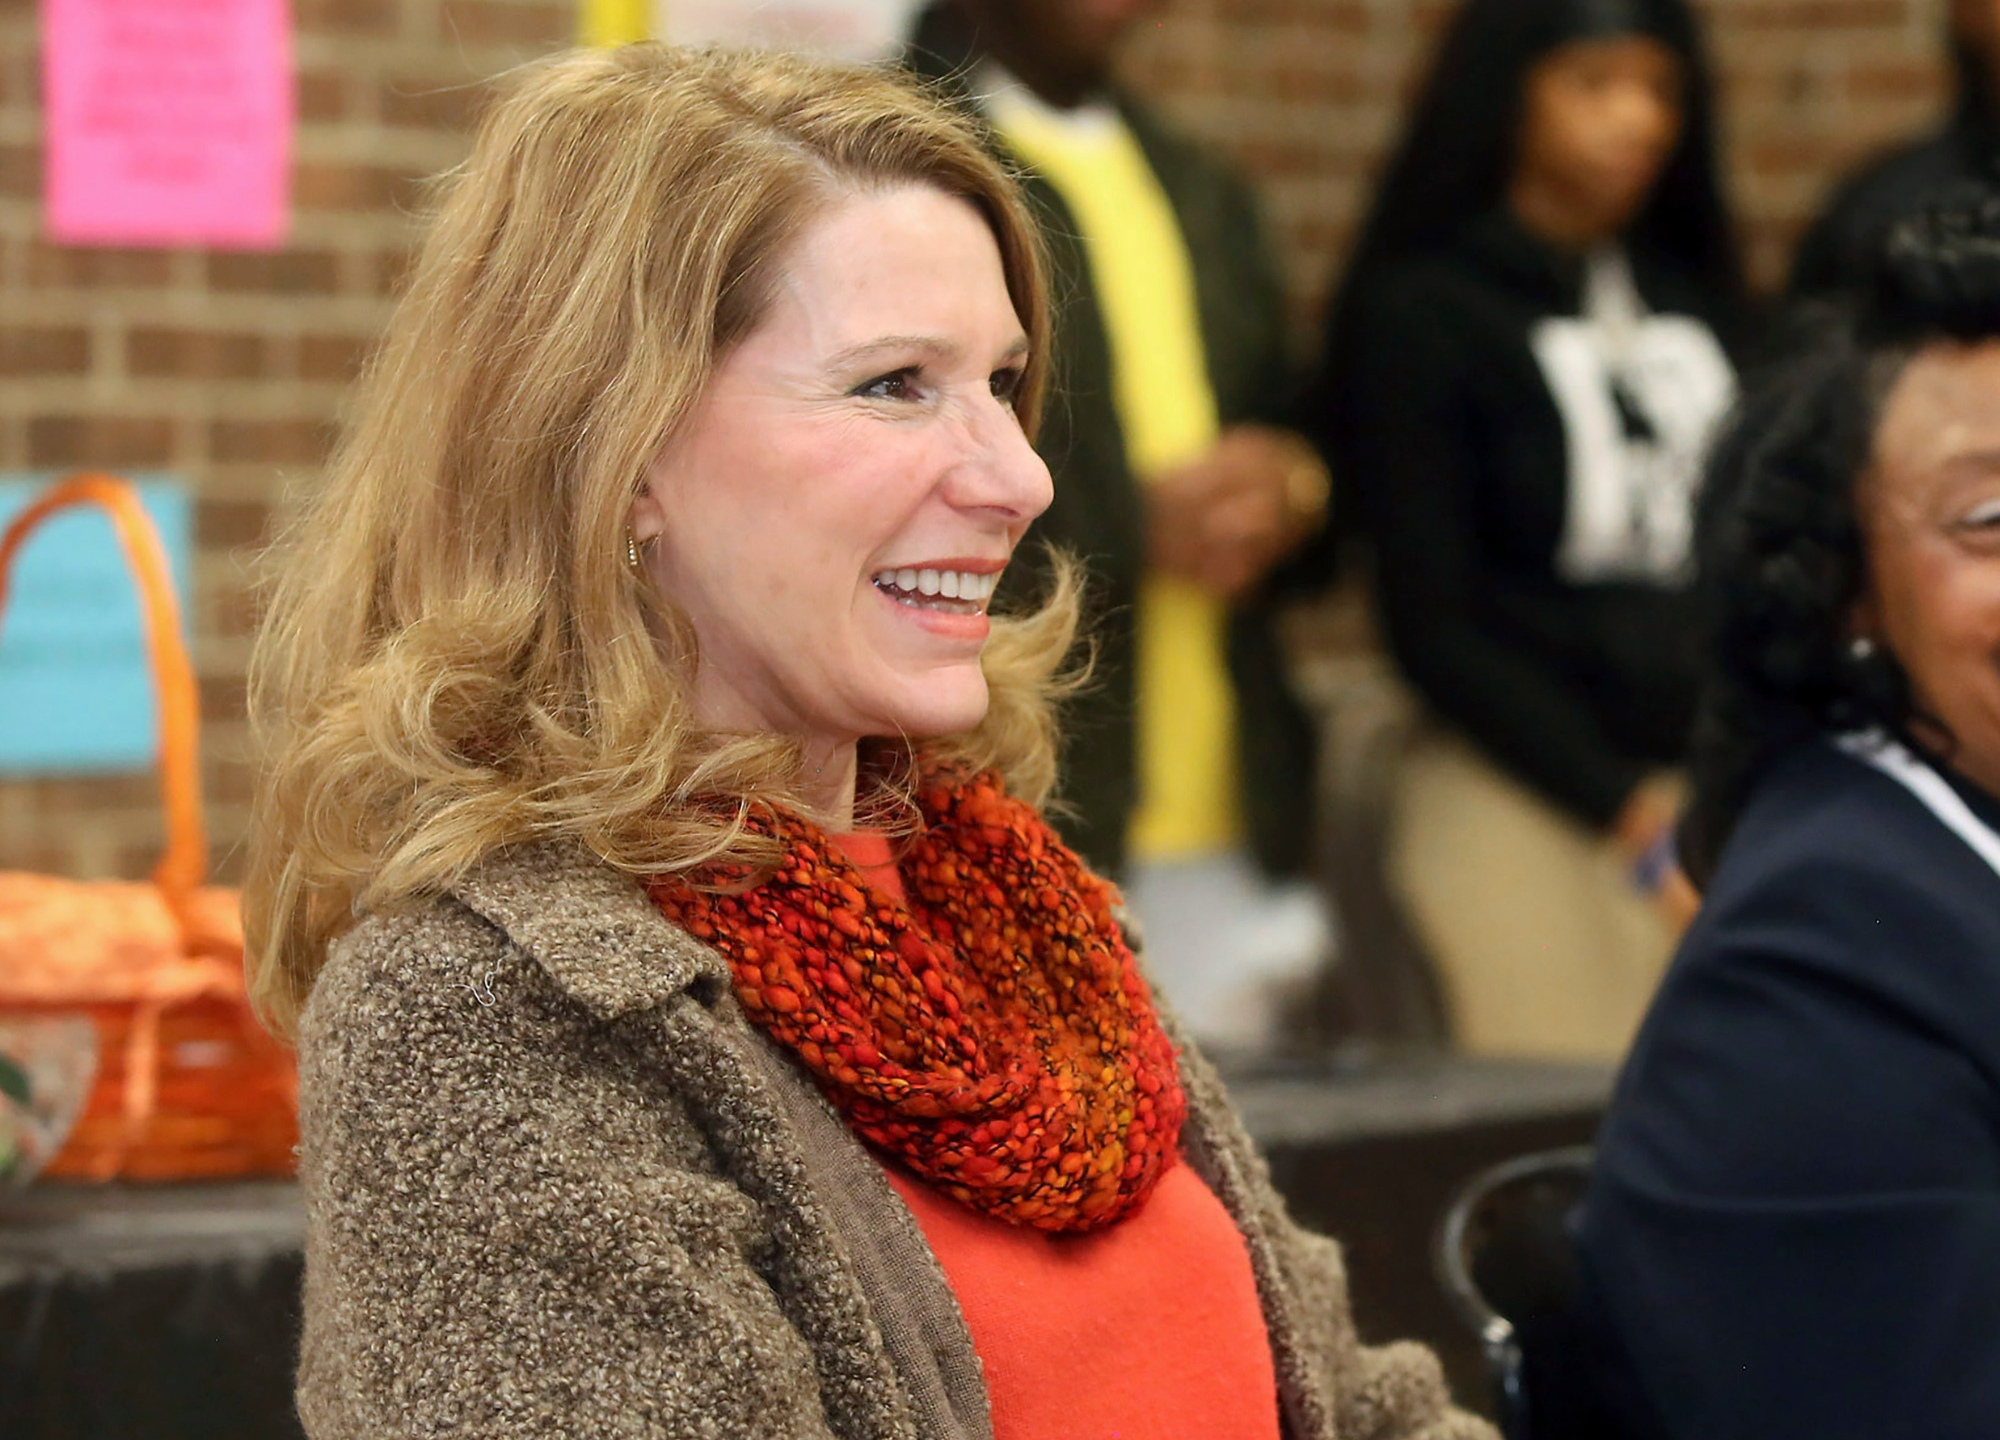 "FILE - In this March 4, 2019 file photo, Kristin Cooper, first lady of North Carolina, laughs as she responds to a question from a North Edgecombe High School student while visiting the high school as a part of National School Breakfast Week in Leggett, N.C. Cooper apologized Thursday, Nov. 5, 2020, through an emailed statement from her spokesperson to The News & Observer after a screenshot of her saying she ""flipped off"" supporters of President Donald Trump during a rally in the state was circulated on social media. (Alan Campbell/Rocky Mount Telegram via AP)"